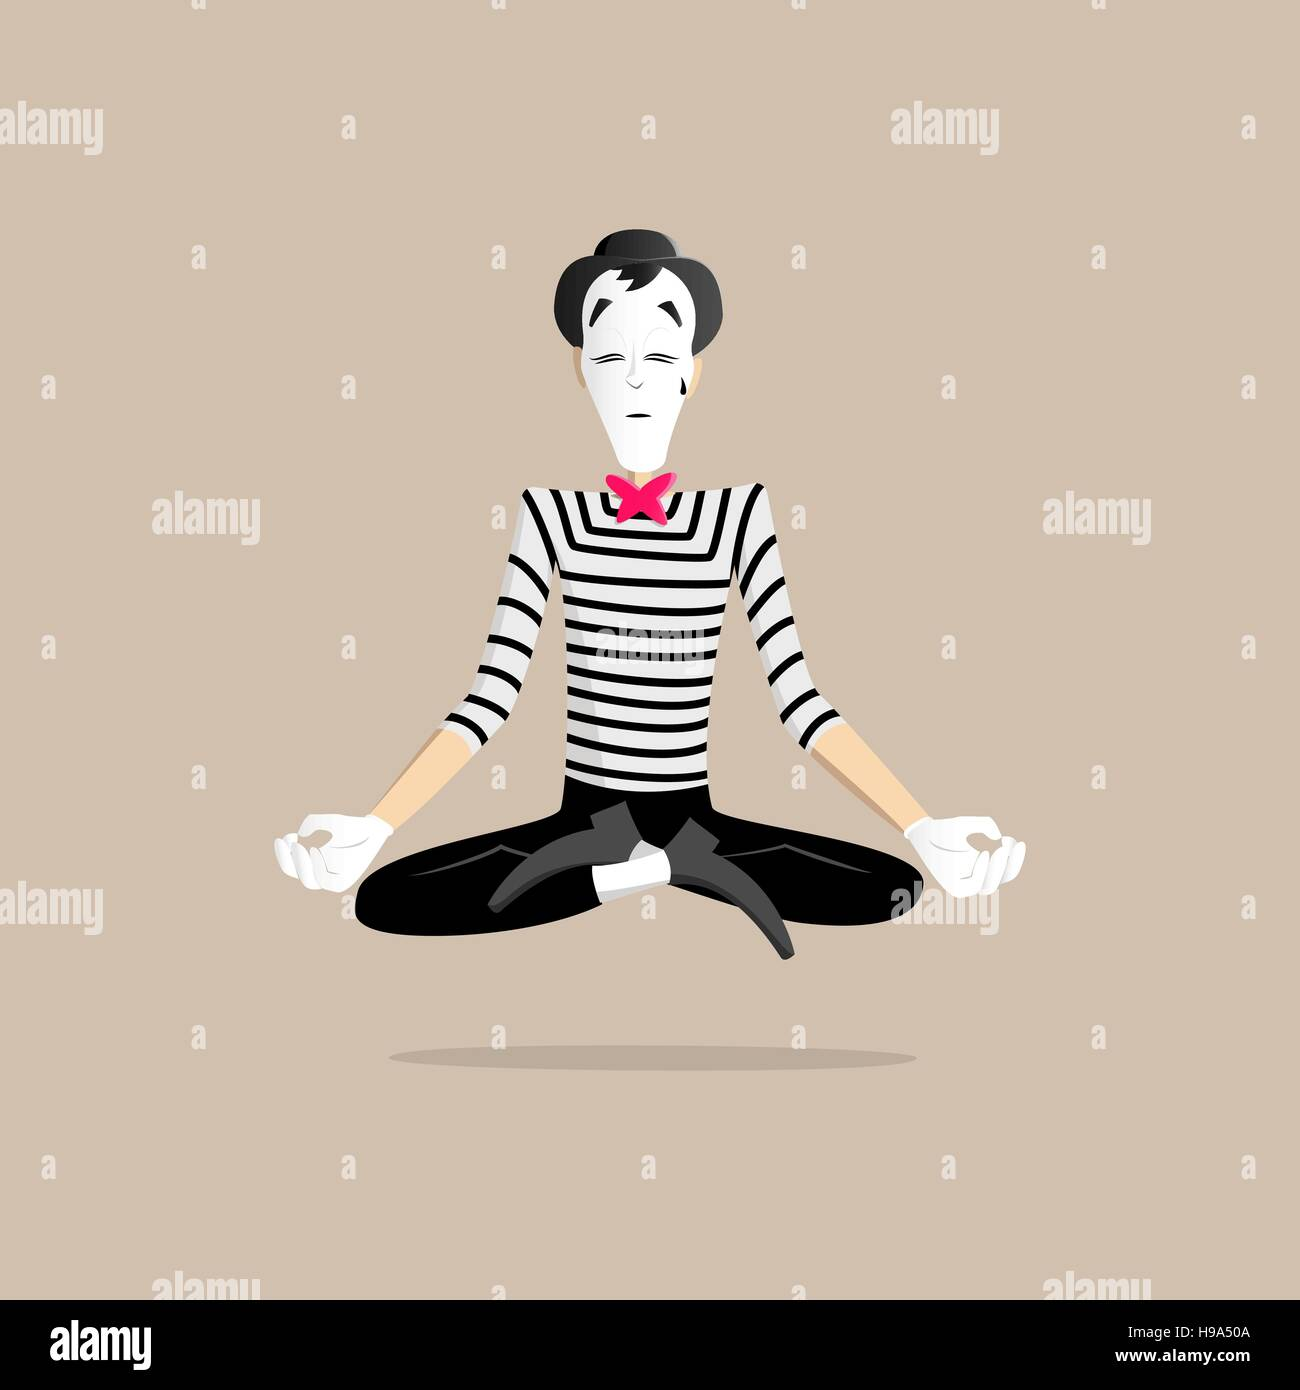 A Mime performing a pantomime called meditation - Stock Image